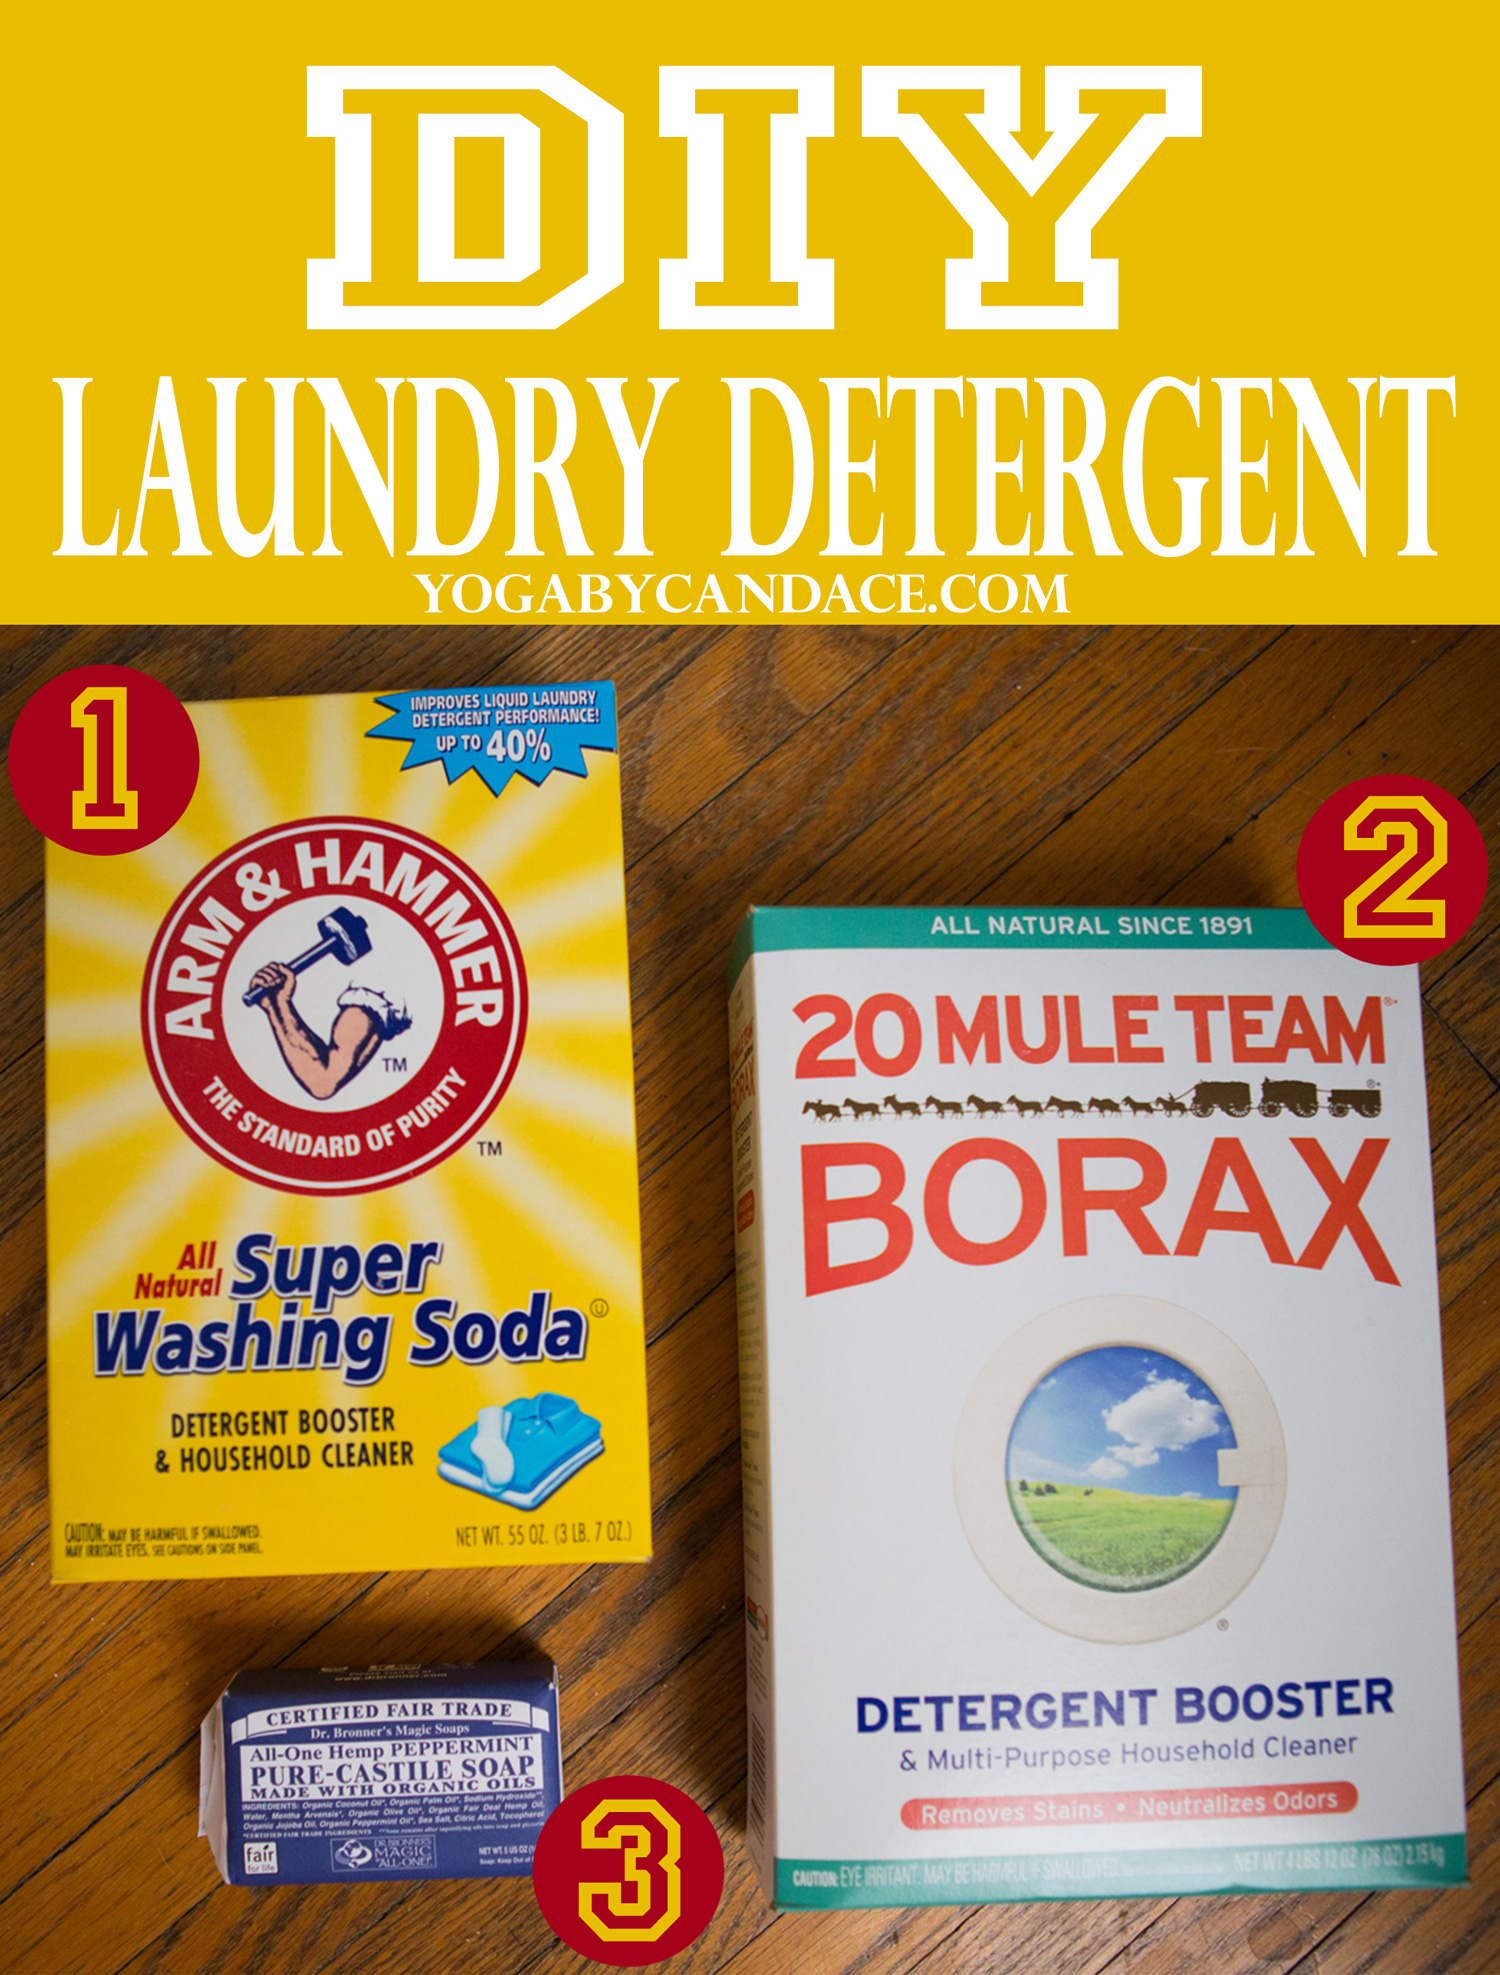 Pin it! How to make your own laundry detergent